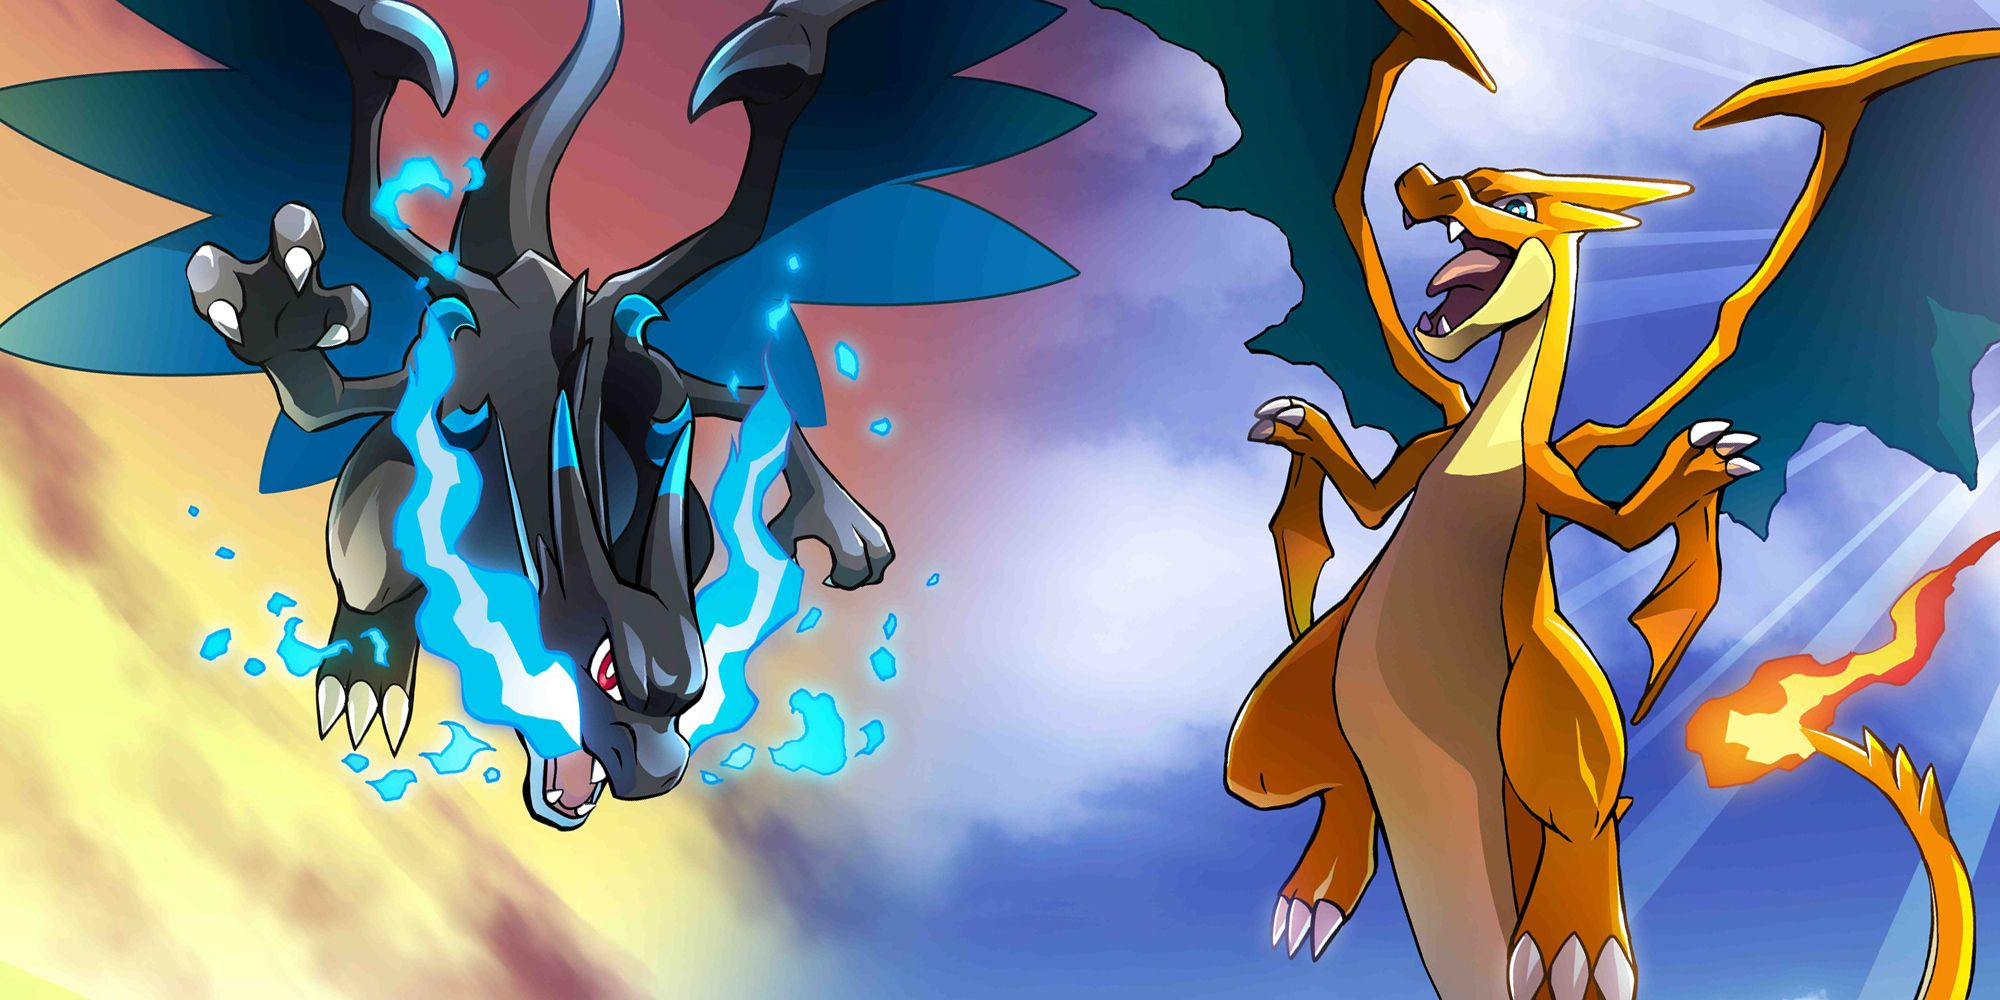 Pok mon 15 most powerful mega evolutions so far screenrant - Pokemon tortank mega evolution ...